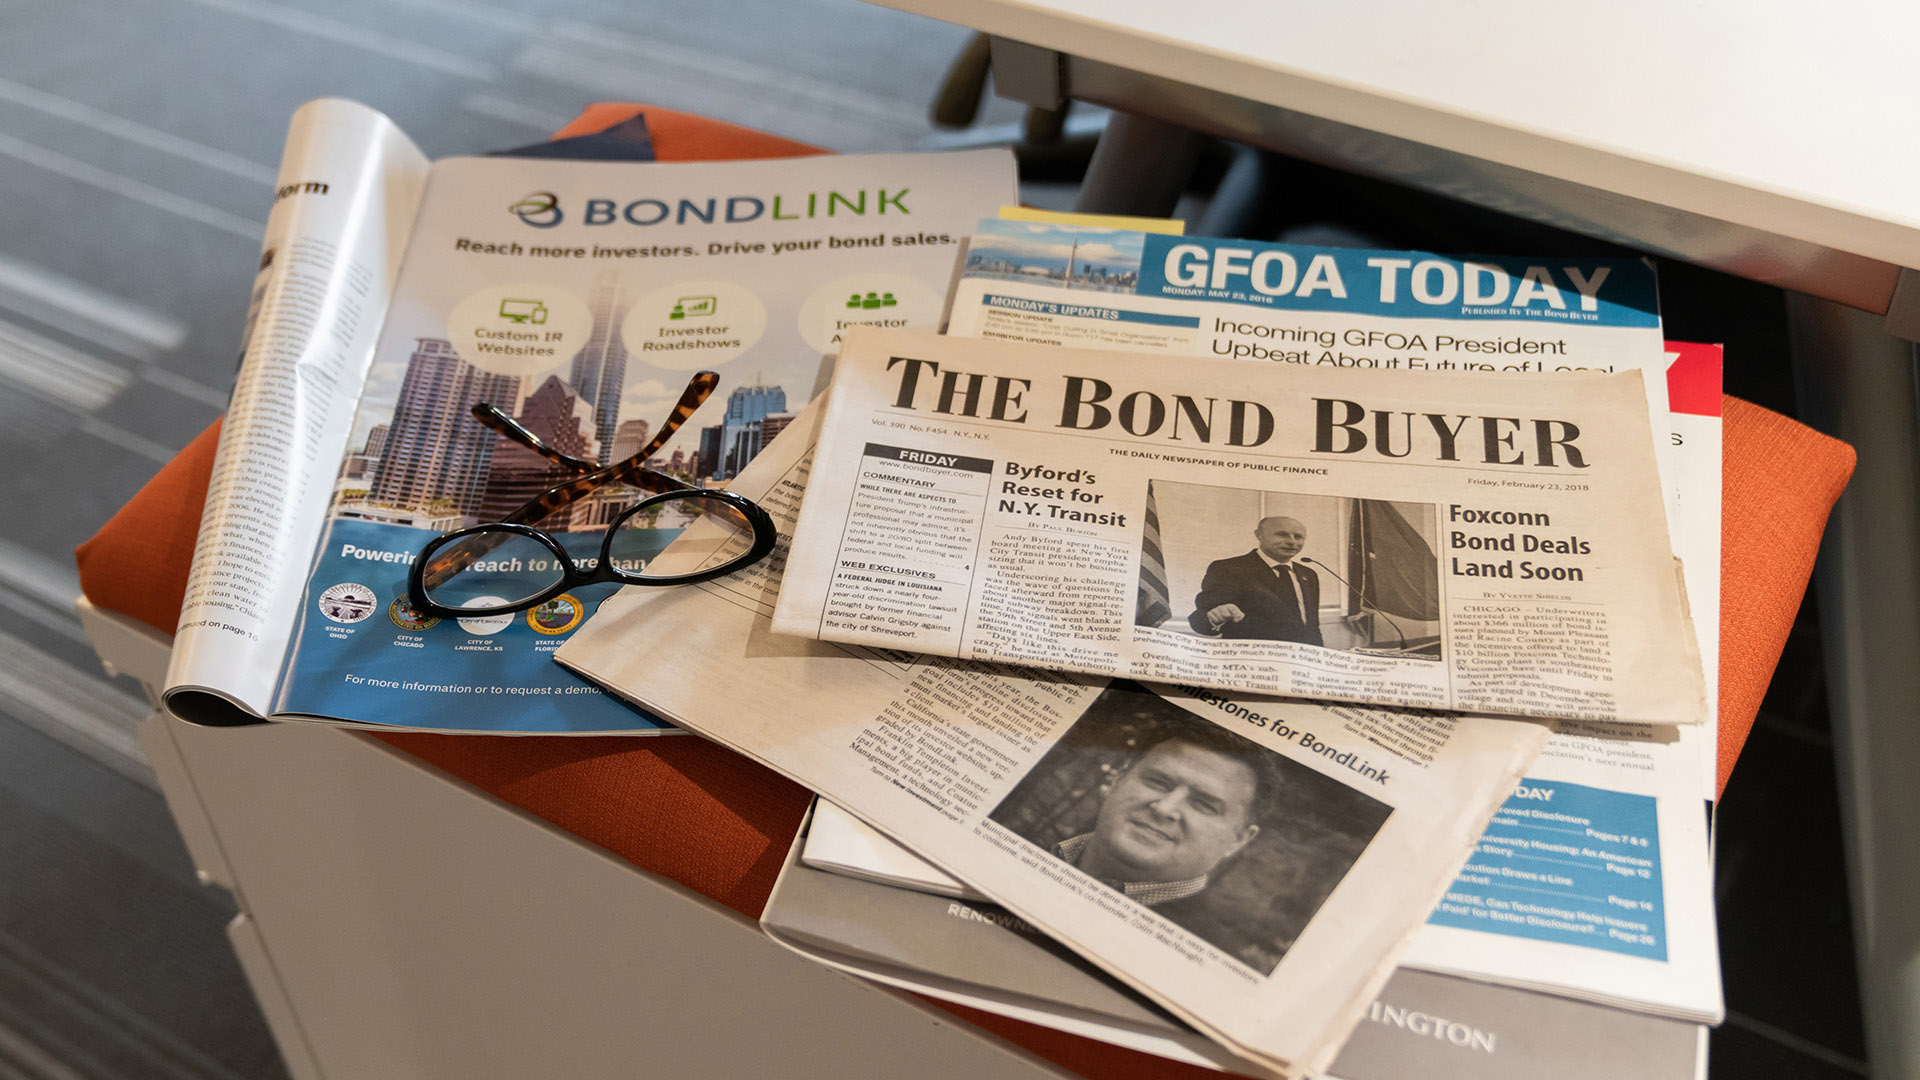 Stack of newspapers and magazines featuring BondLink